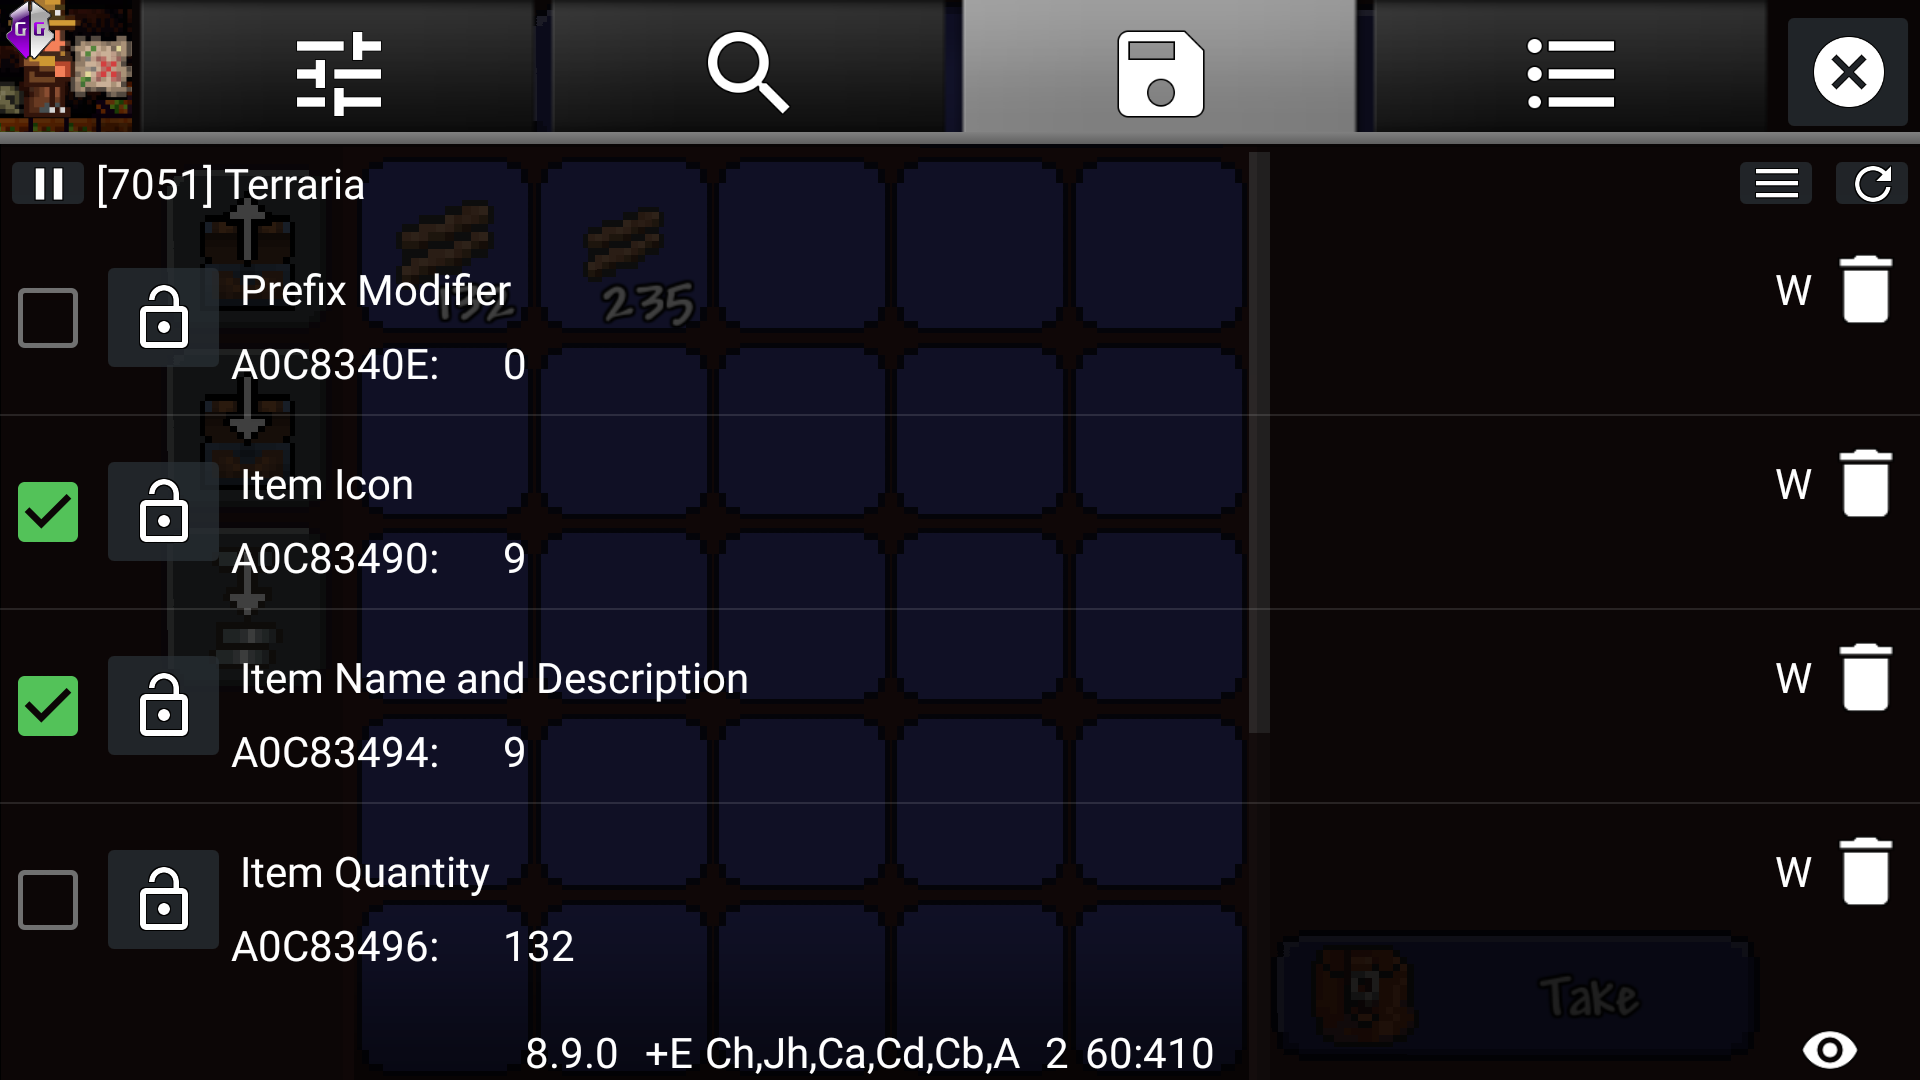 Terraria: Mobile inventory editing (Android) - terraria